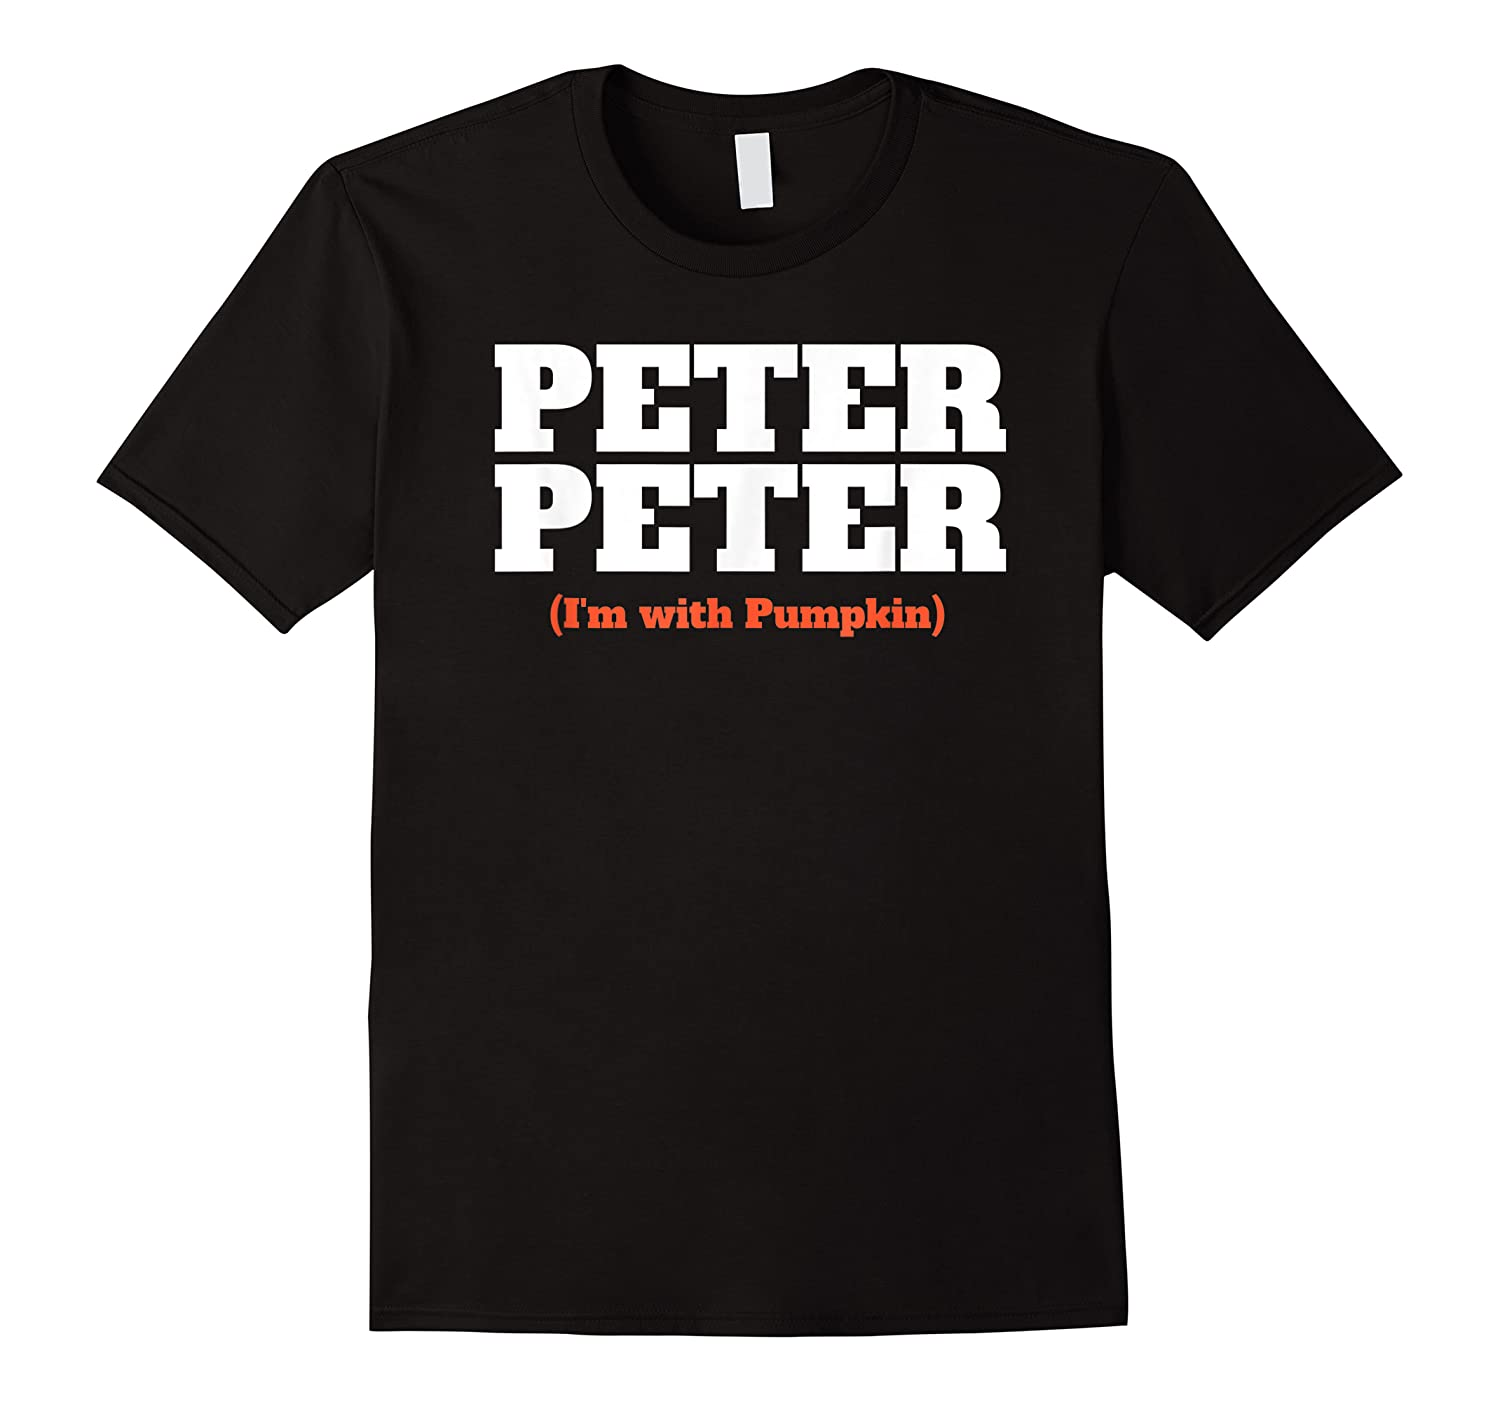 Funny Halloween For Peter Peter Couples Costume Shirts